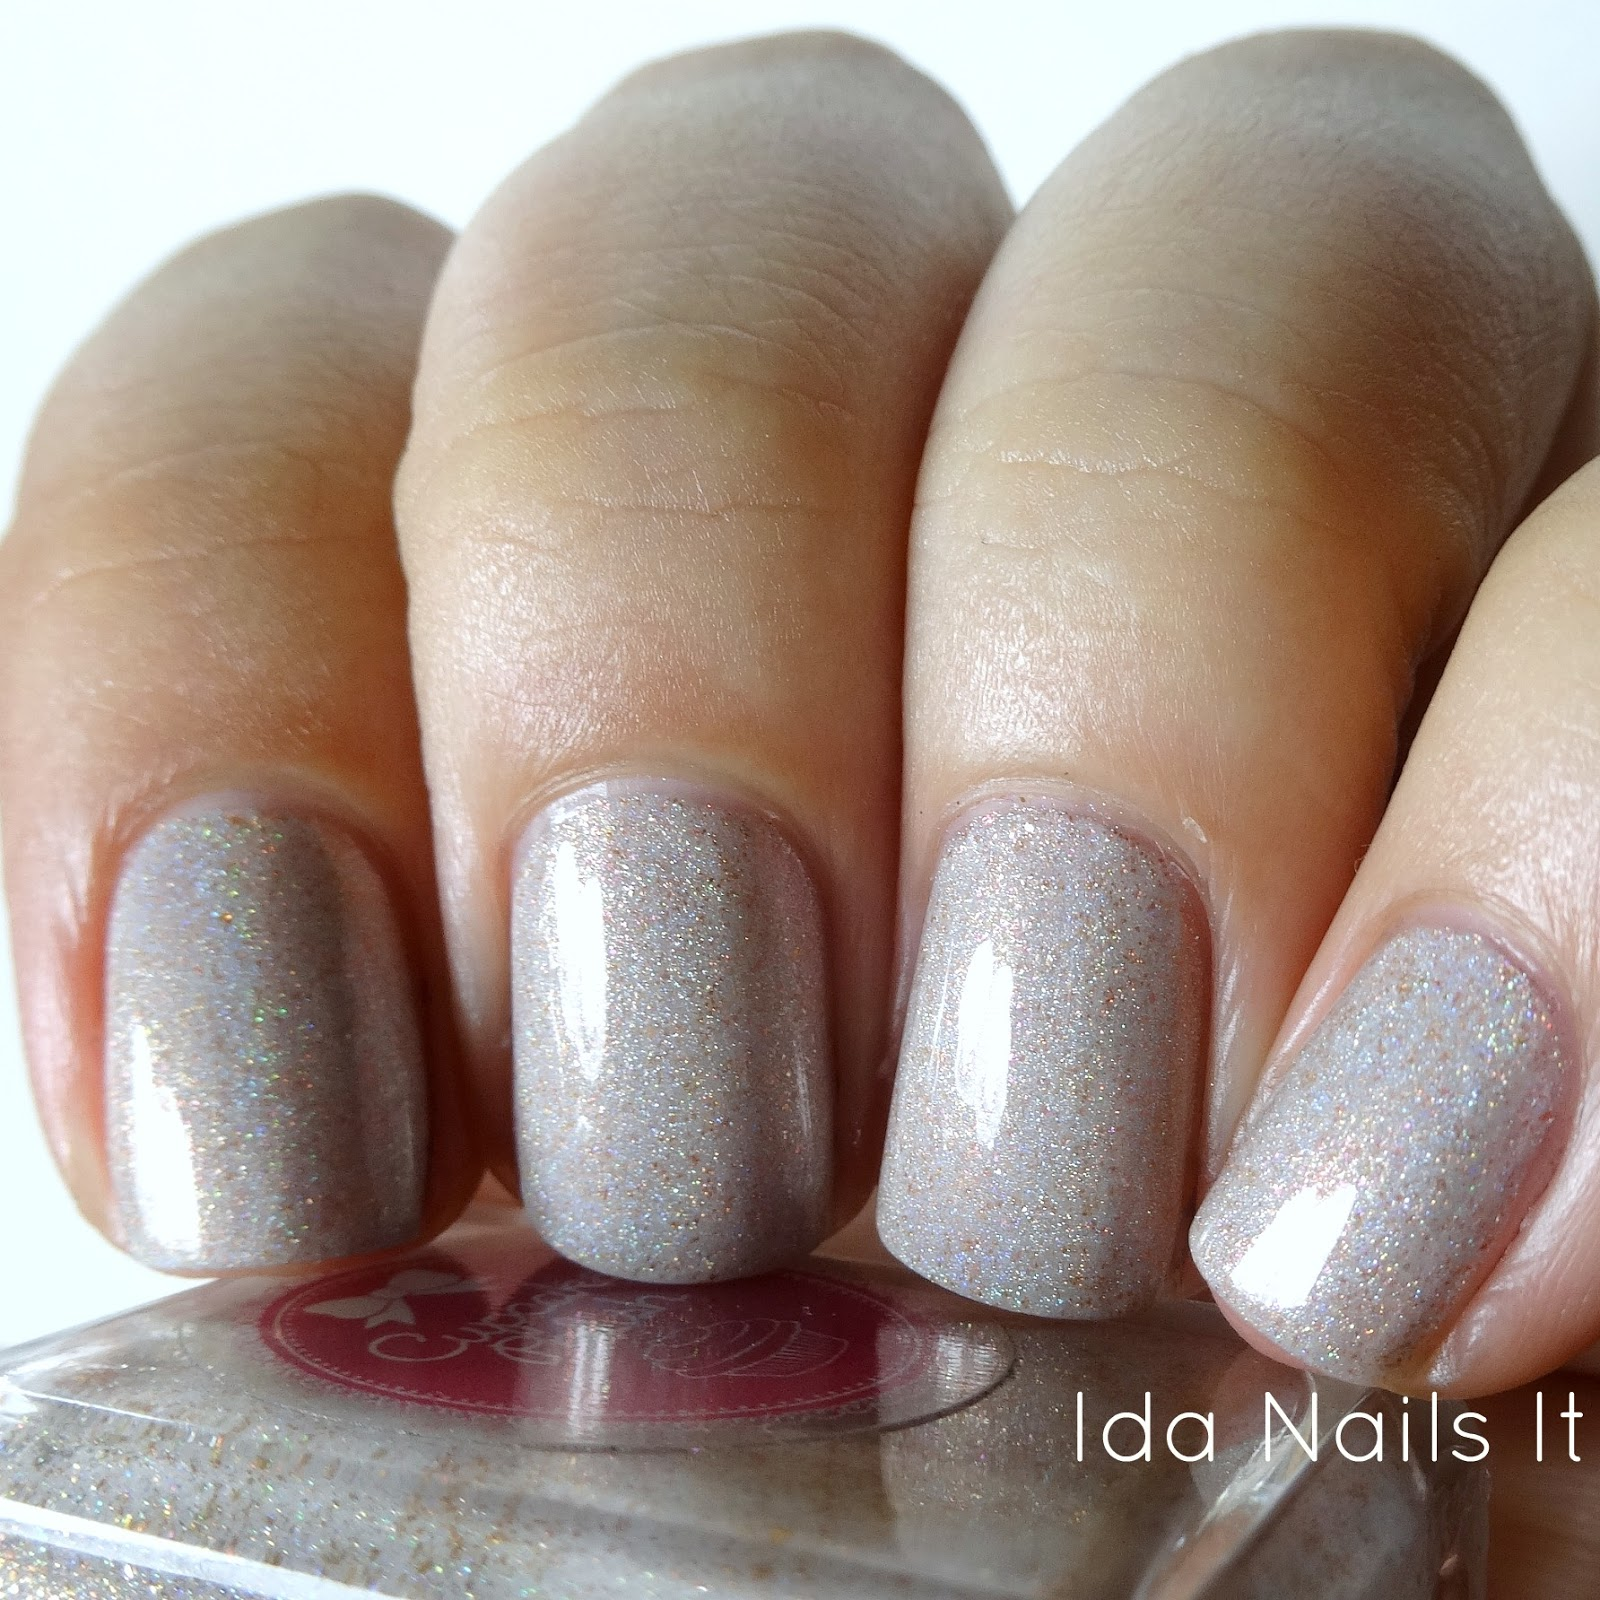 Ida Nails It: The Holo Hookup September 2016 Box: Swatches and Review